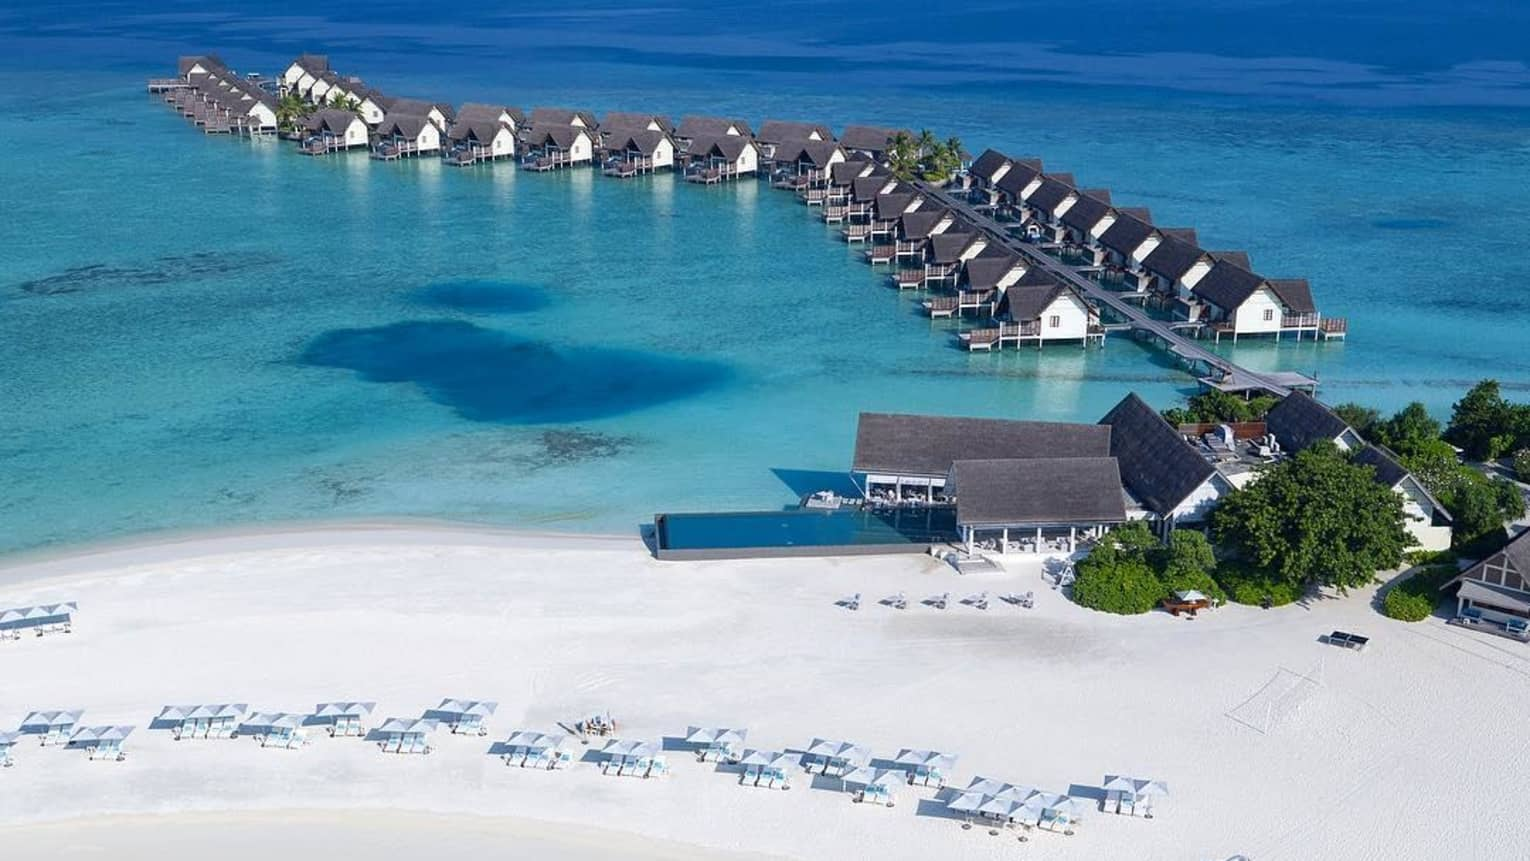 Aerial view of white sand beach, row of overwater bungalow villas stretching over blue lagoon